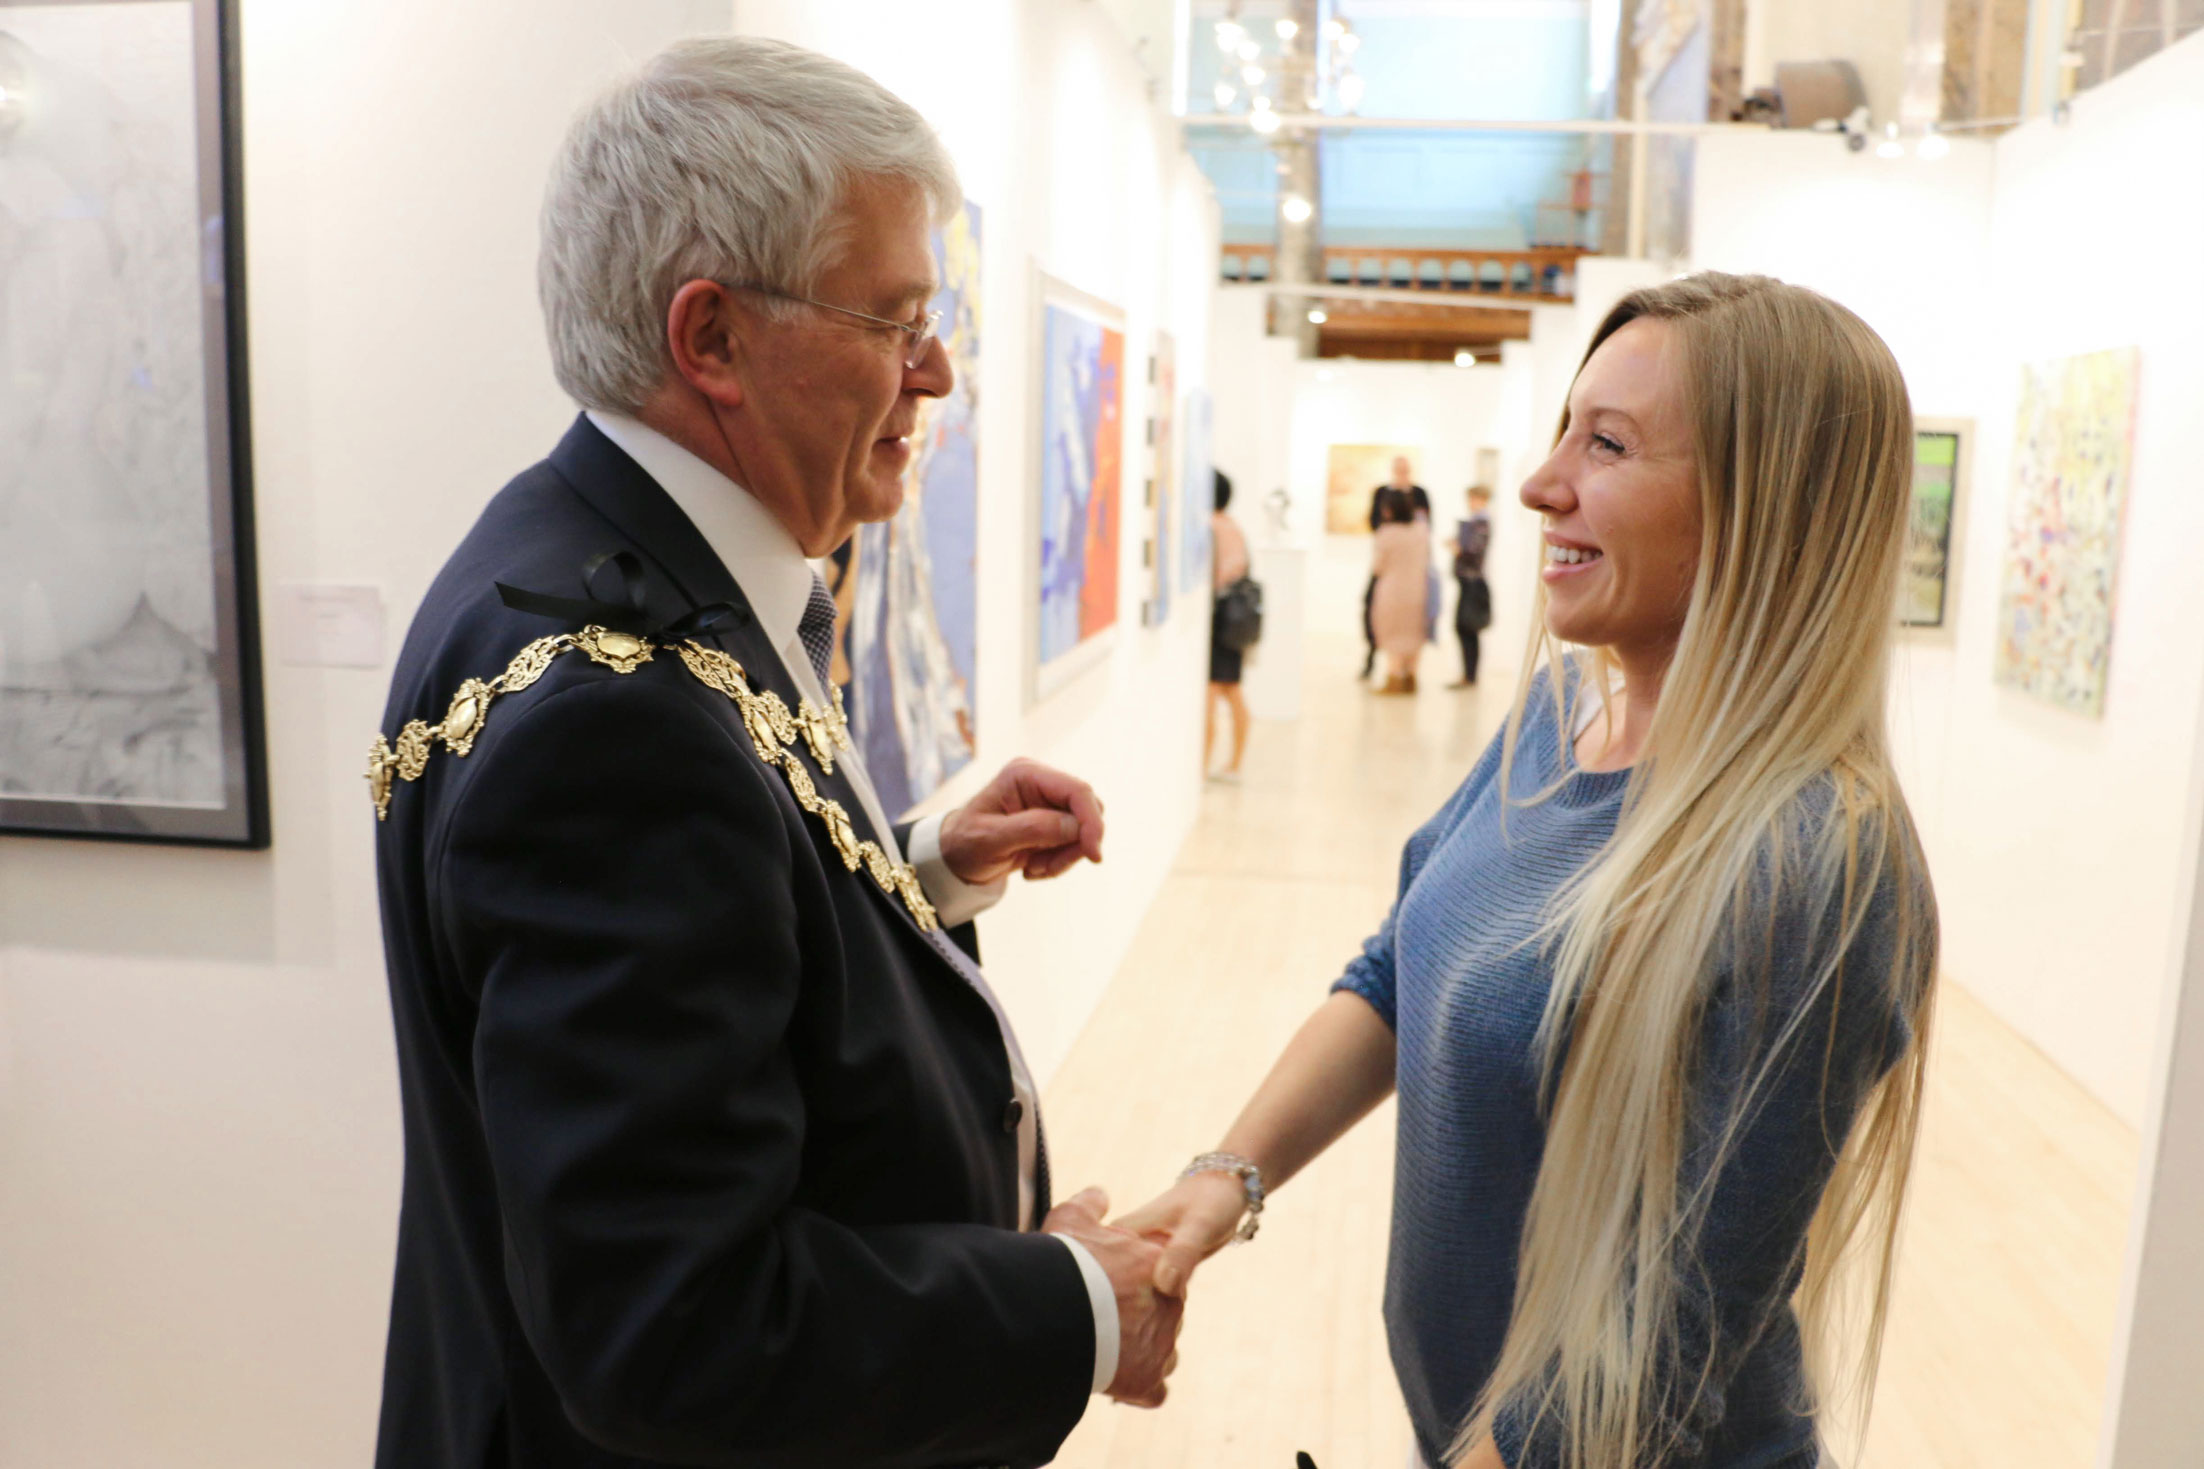 Helena Jay with the Mayor - London Biennale 2019